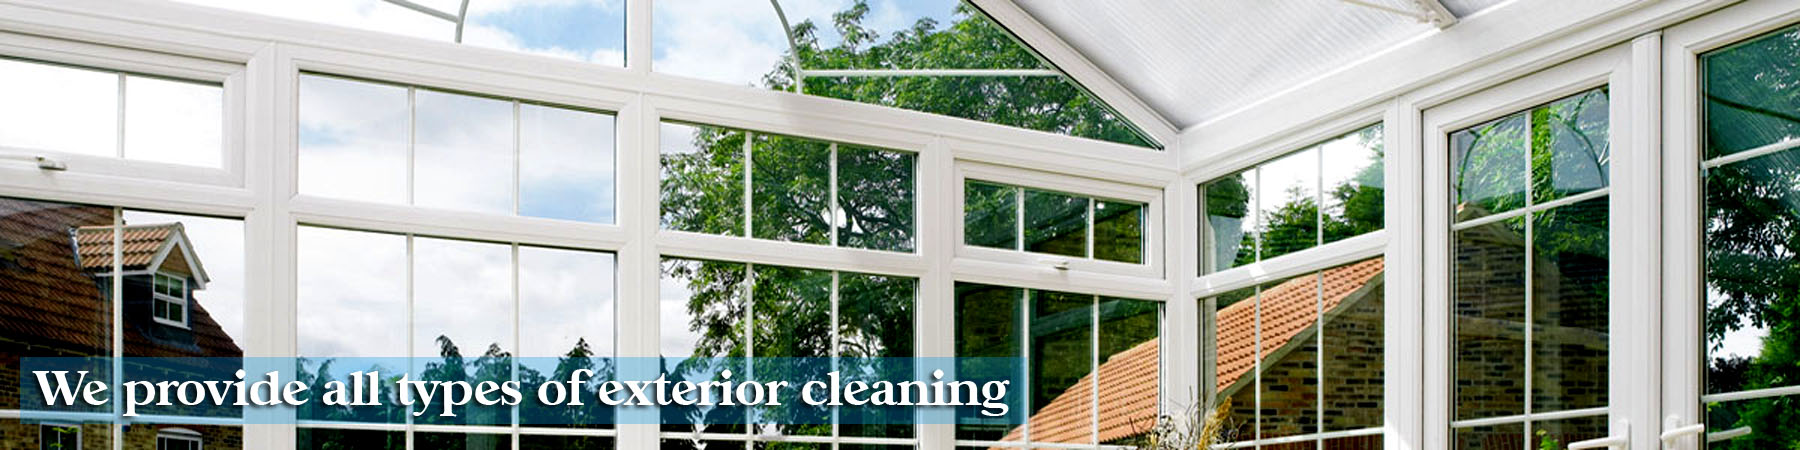 conservatory-cleaning